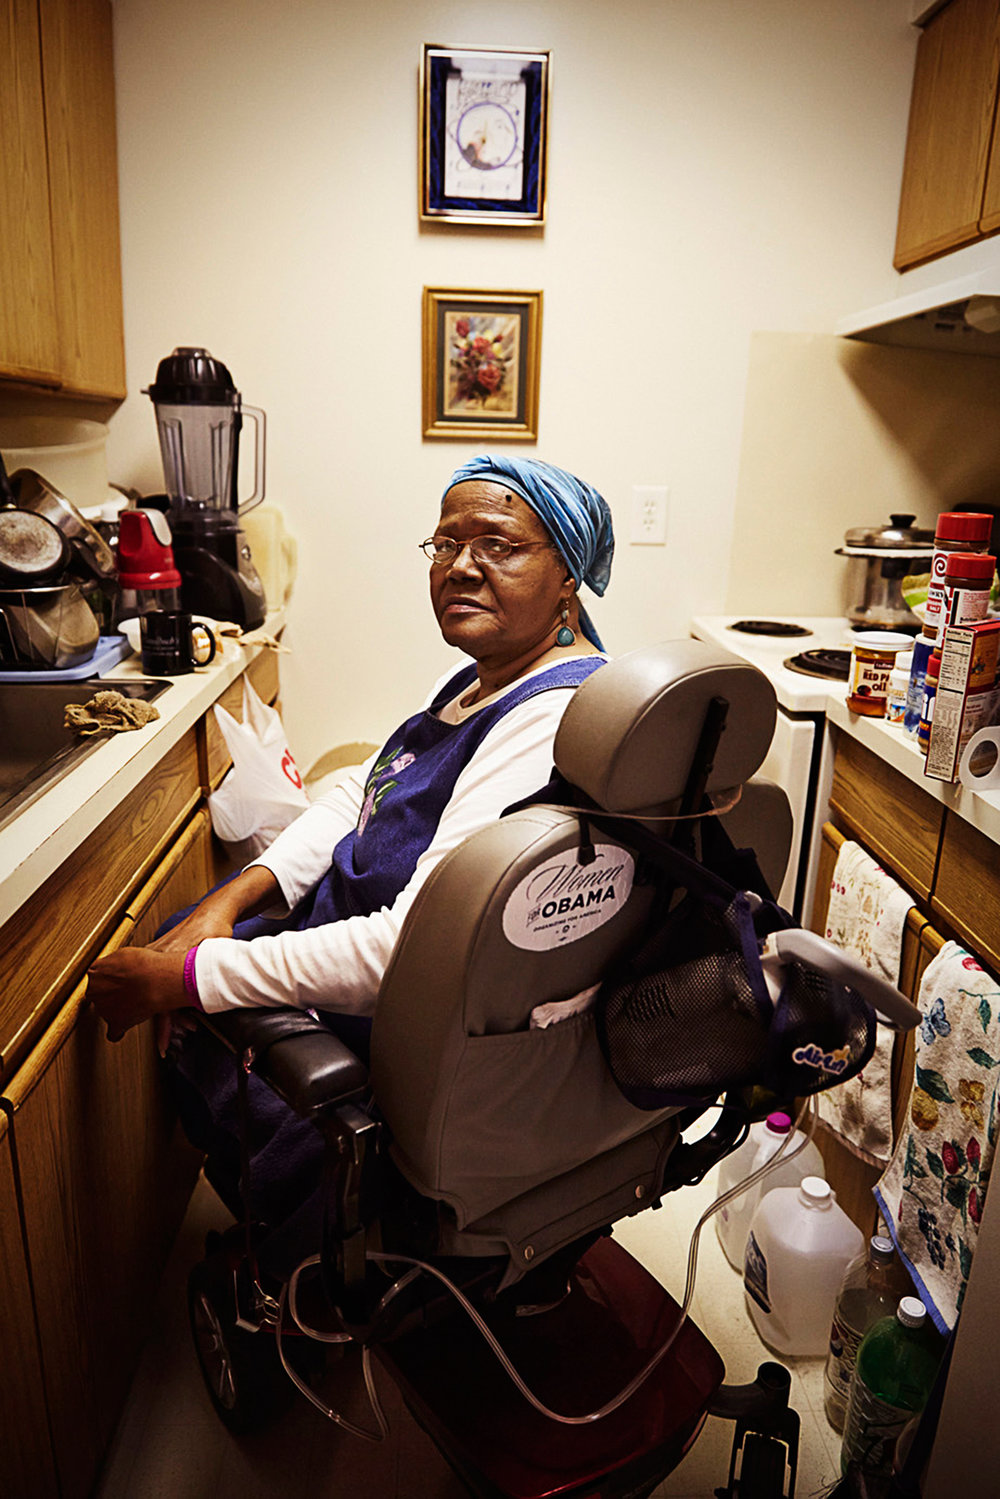 In 2014 President Obama signed into law a bill that would cut $8 billion from the Supplemental Nutrition Assistance Program (SNAP) over 10 years.    Willie Smith pictured at her home in subsidized senior housing in Detroit, MI. She saw her meager amount of benefits of $73 per month immediately reduced by 20%.